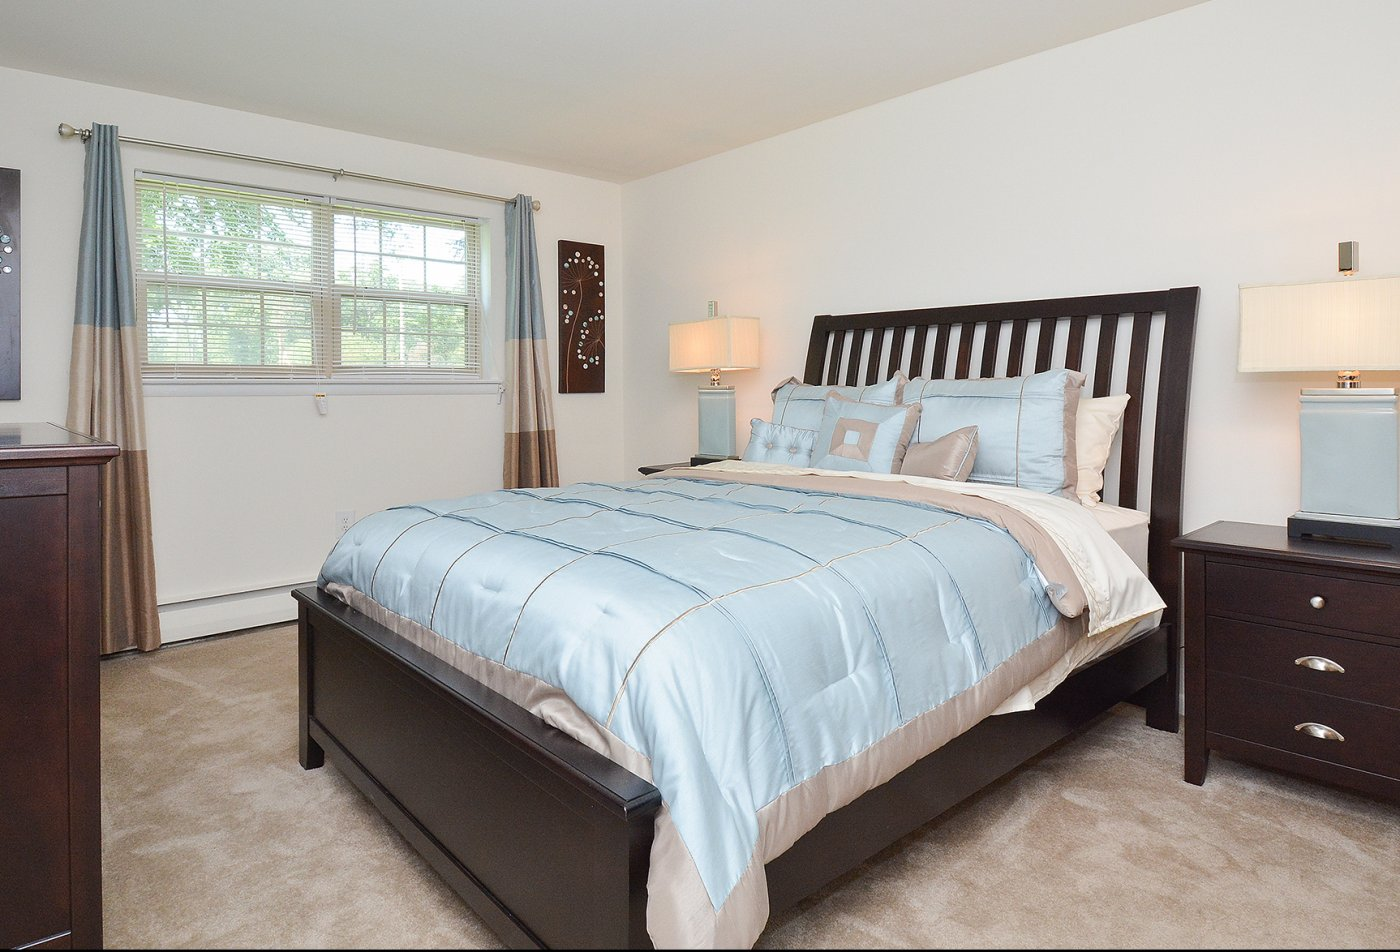 Spacious Master Bedroom | Apartments Homes for rent in Claymont, DE | Naamans Village Apartments